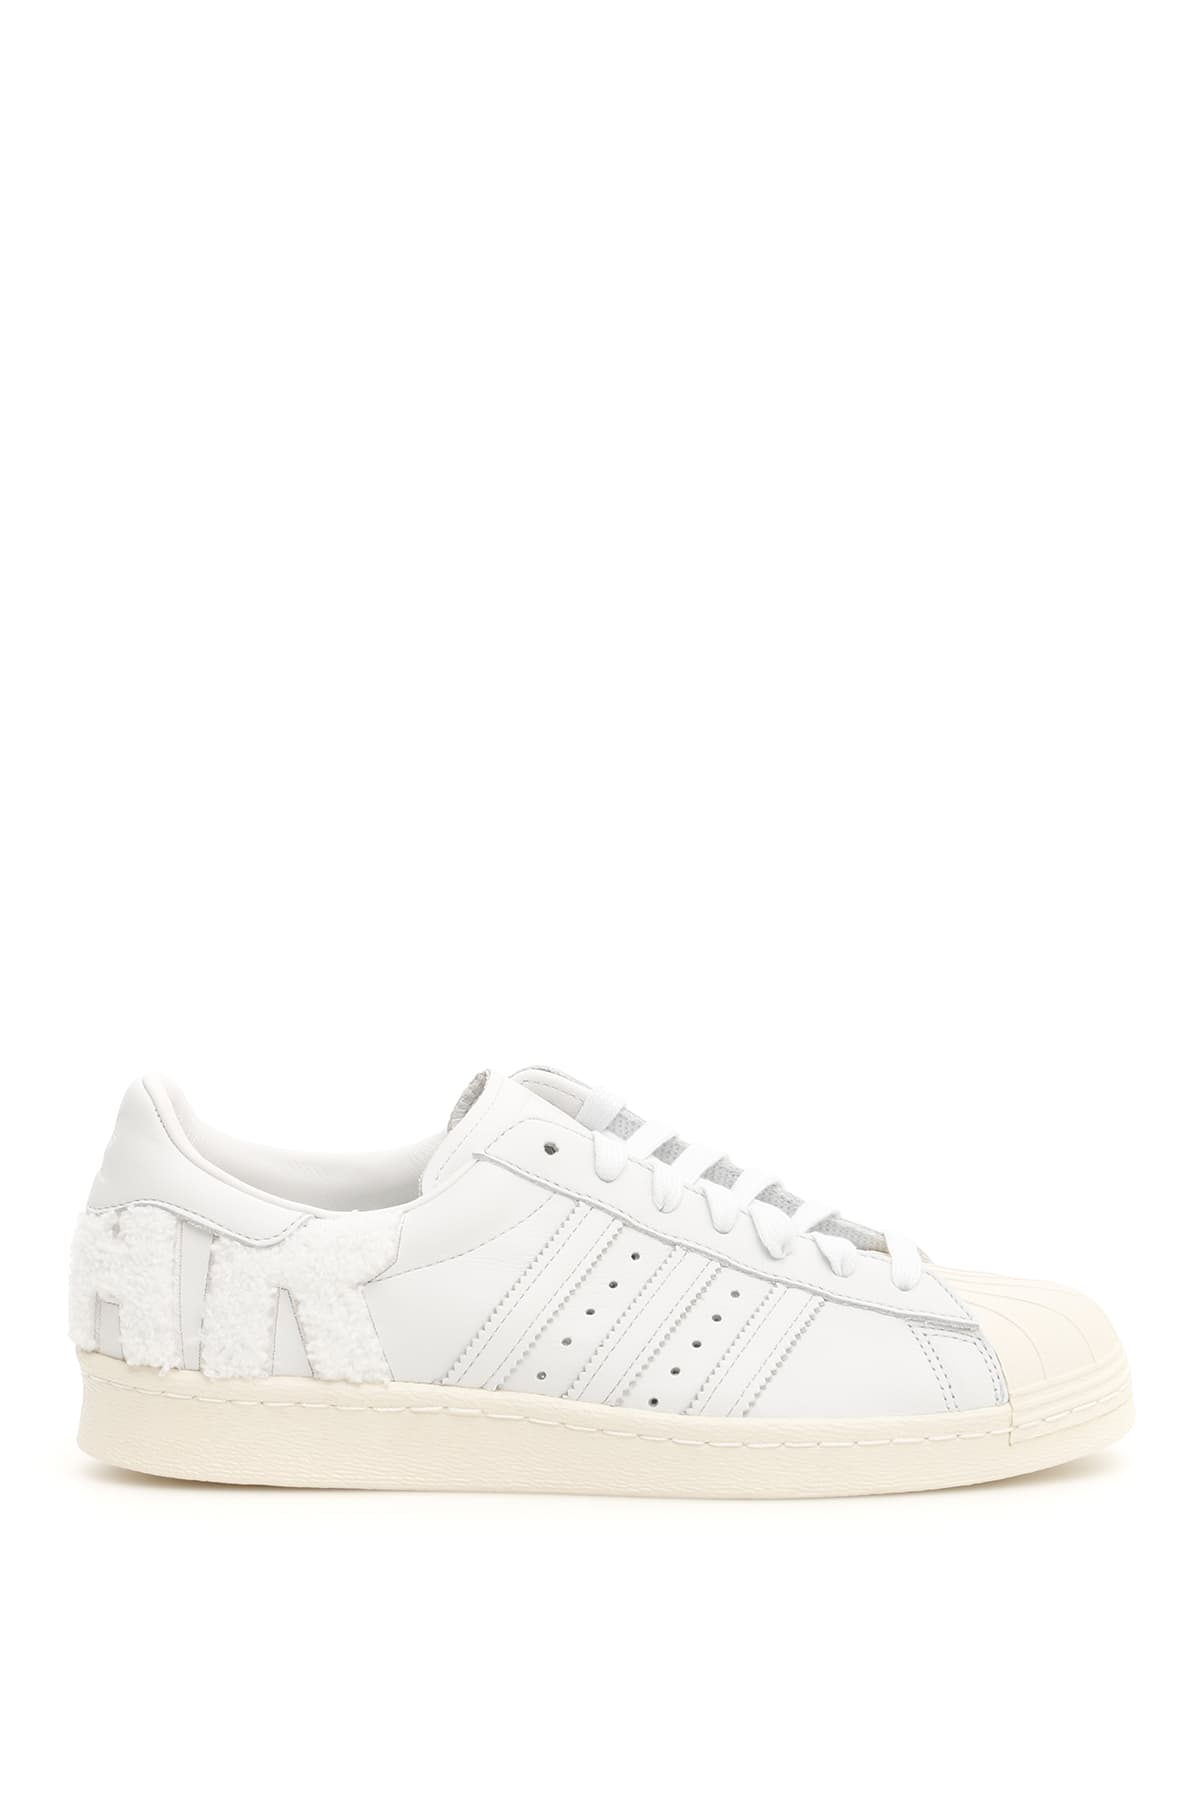 sale retailer c1a9c 54692 Adidas Adidas Superstar Sst 80s Sneakers - CRYSTAL WHITE OFF ...